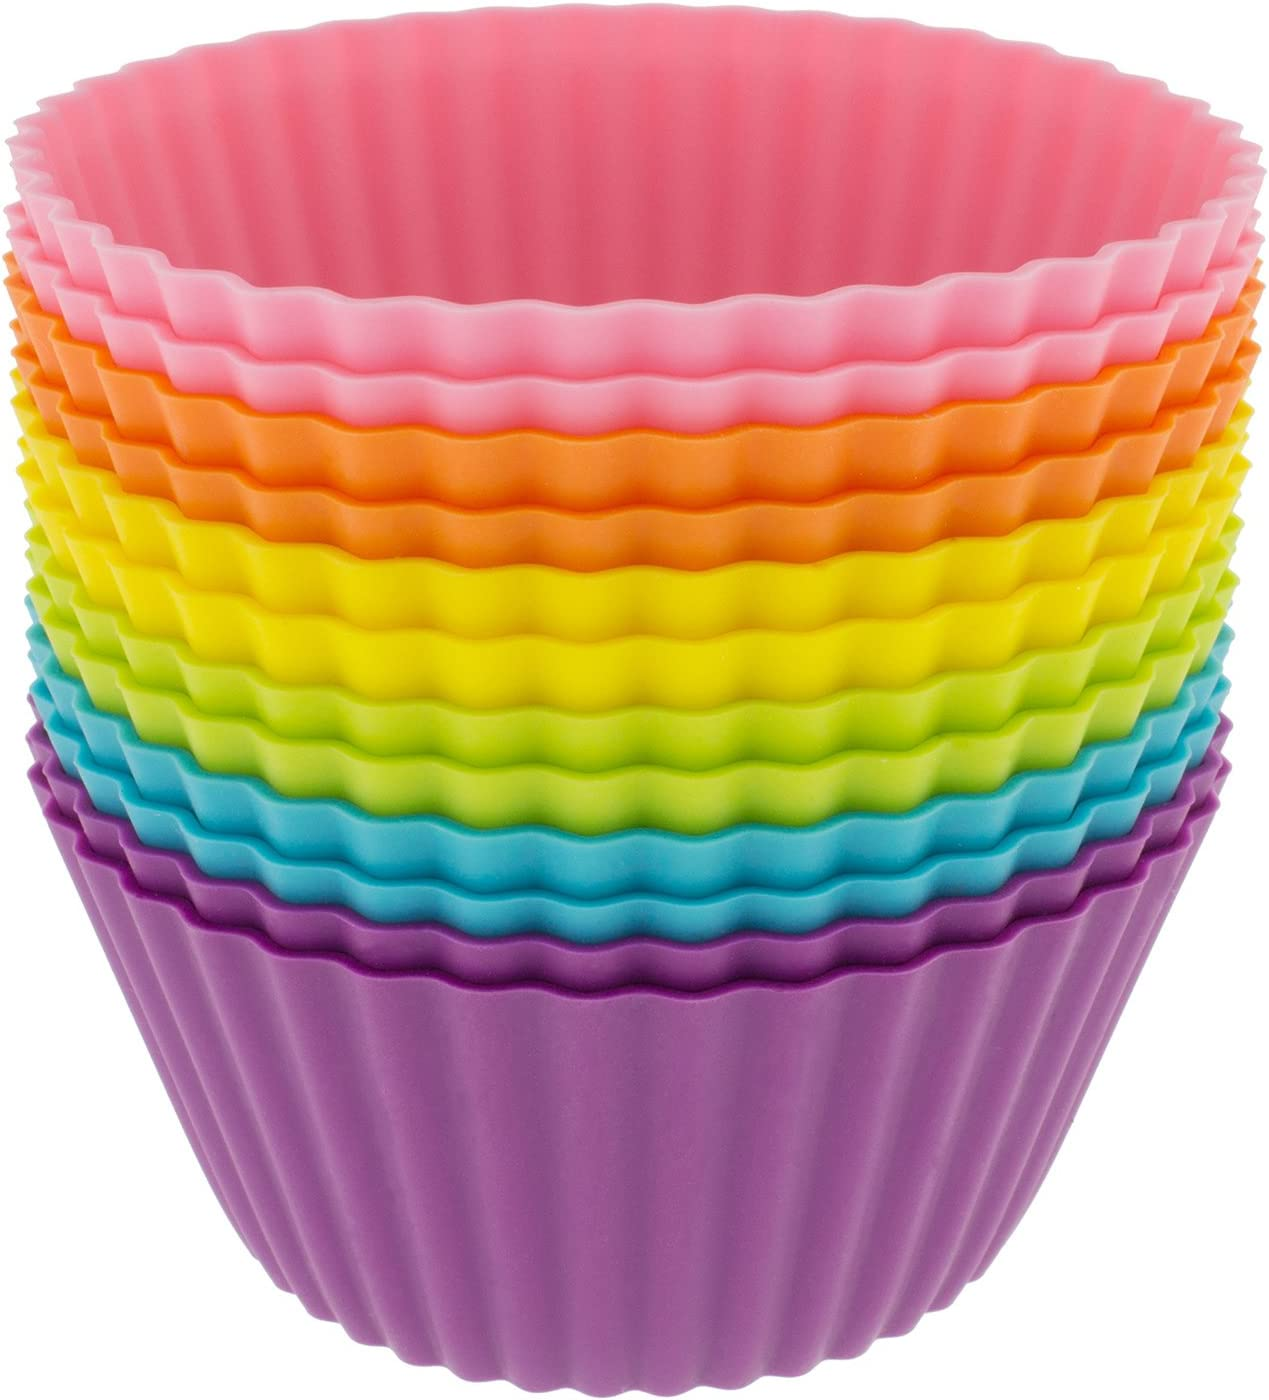 Freshware Silicone Baking Cups 24 Pack Reusable Cupcake Liners Non Stick Muffin Cups Cake Molds Cupcake Holder In 6 Rainbow Colors Standard Round Kitchen Dining